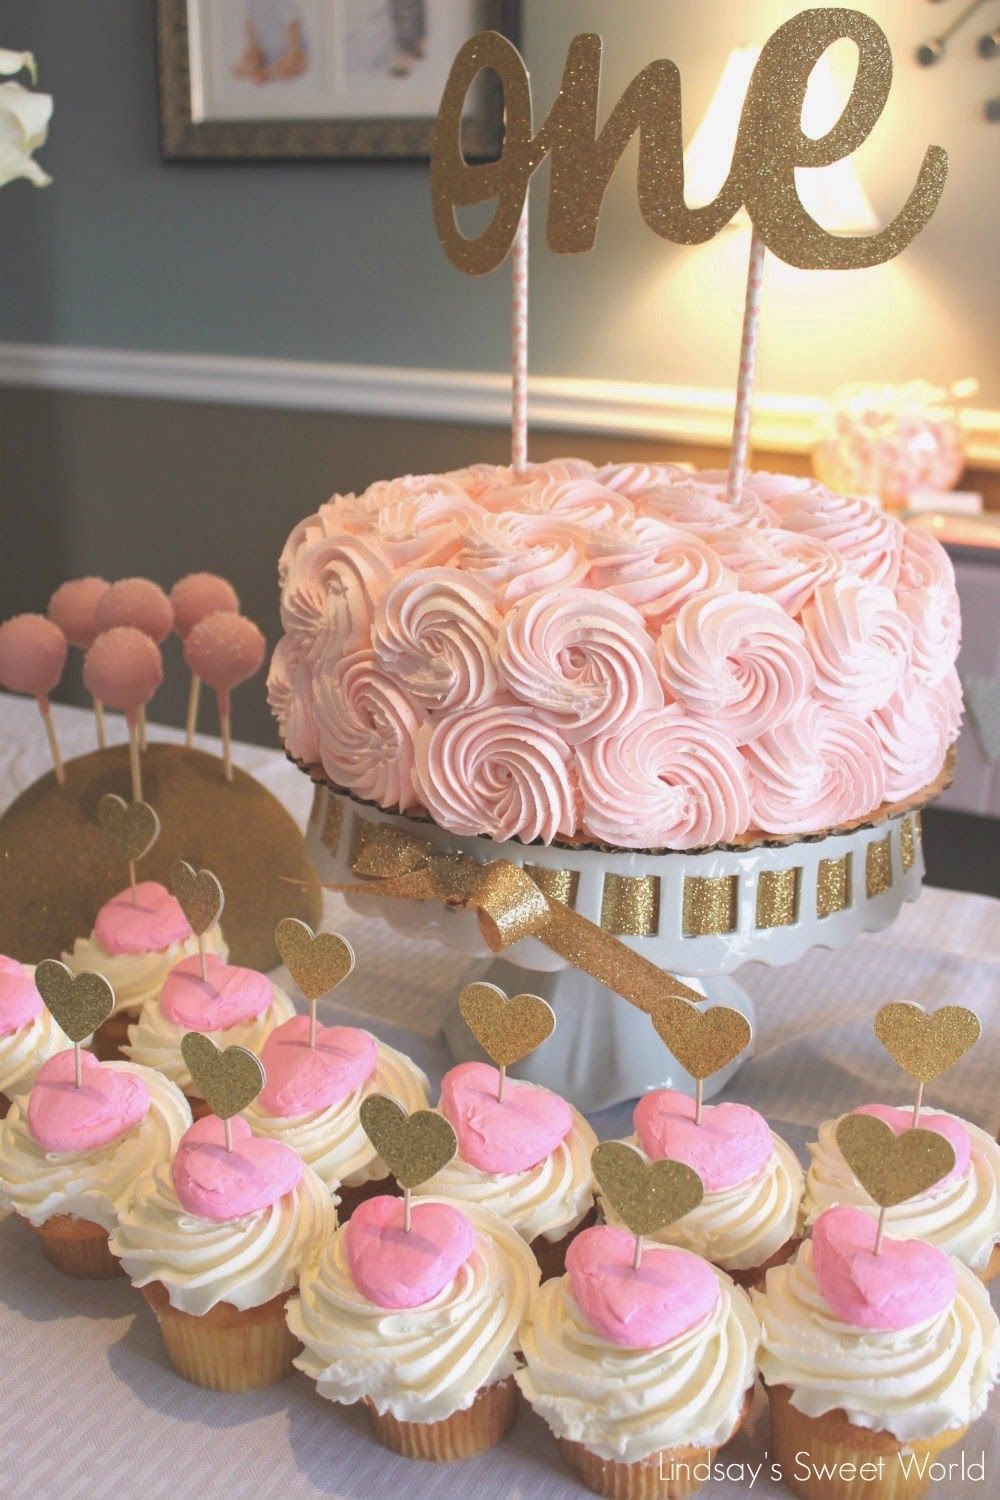 Pink Birthday Cake Decoration Ideas : Lindsay s Sweet World: Pink and gold first birthday party ...